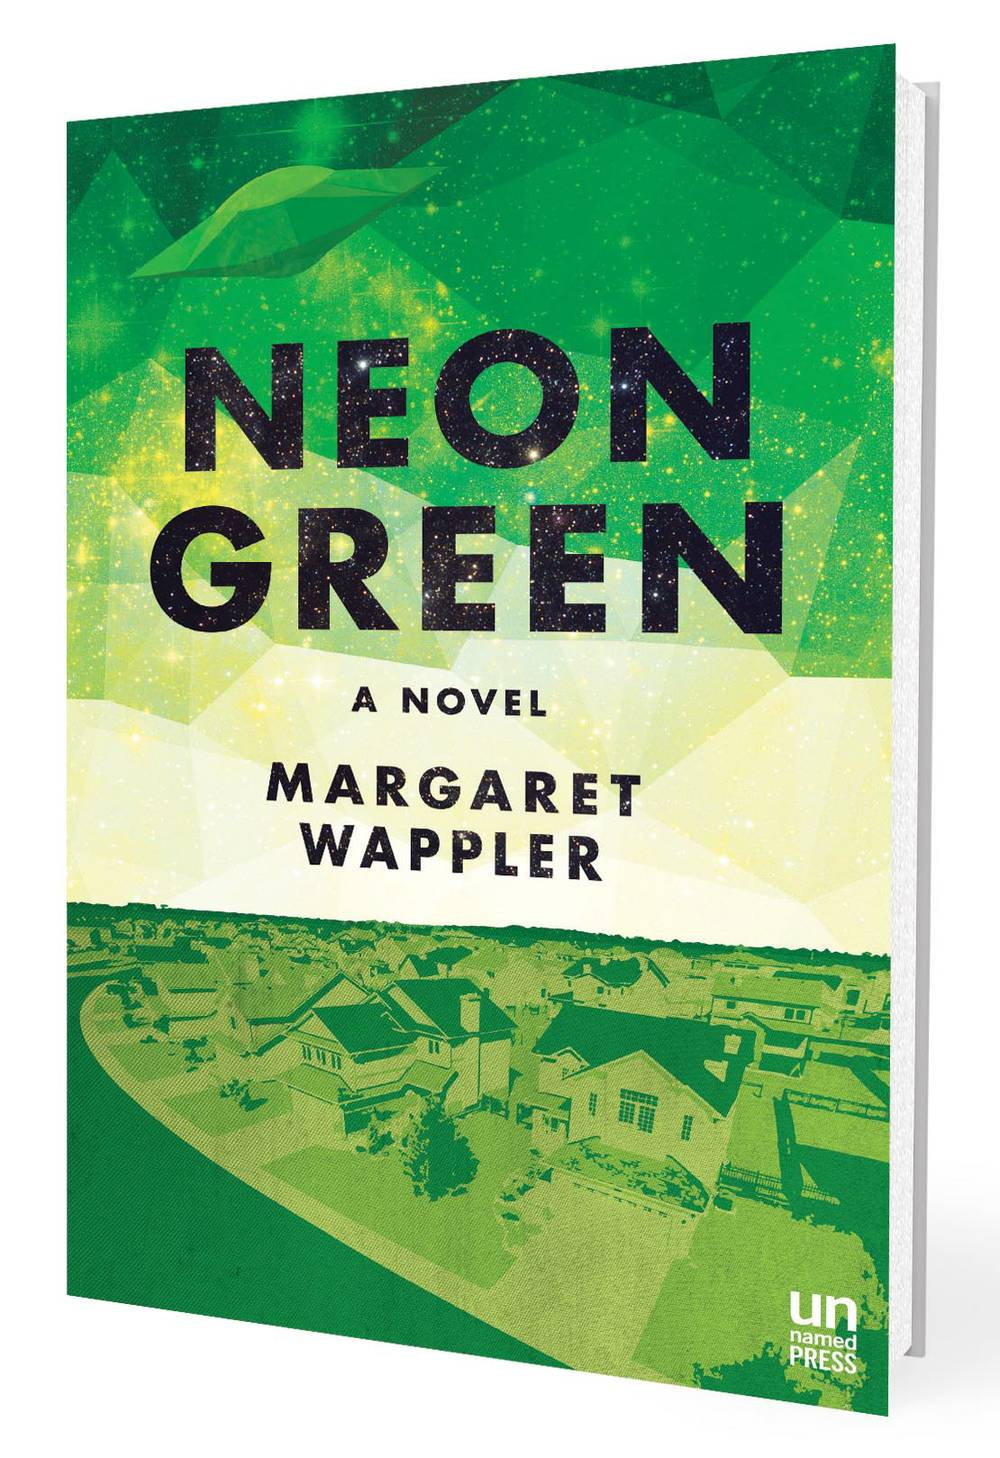 UFO-tinged novel 'Neon Green' is more than just a '90s pop